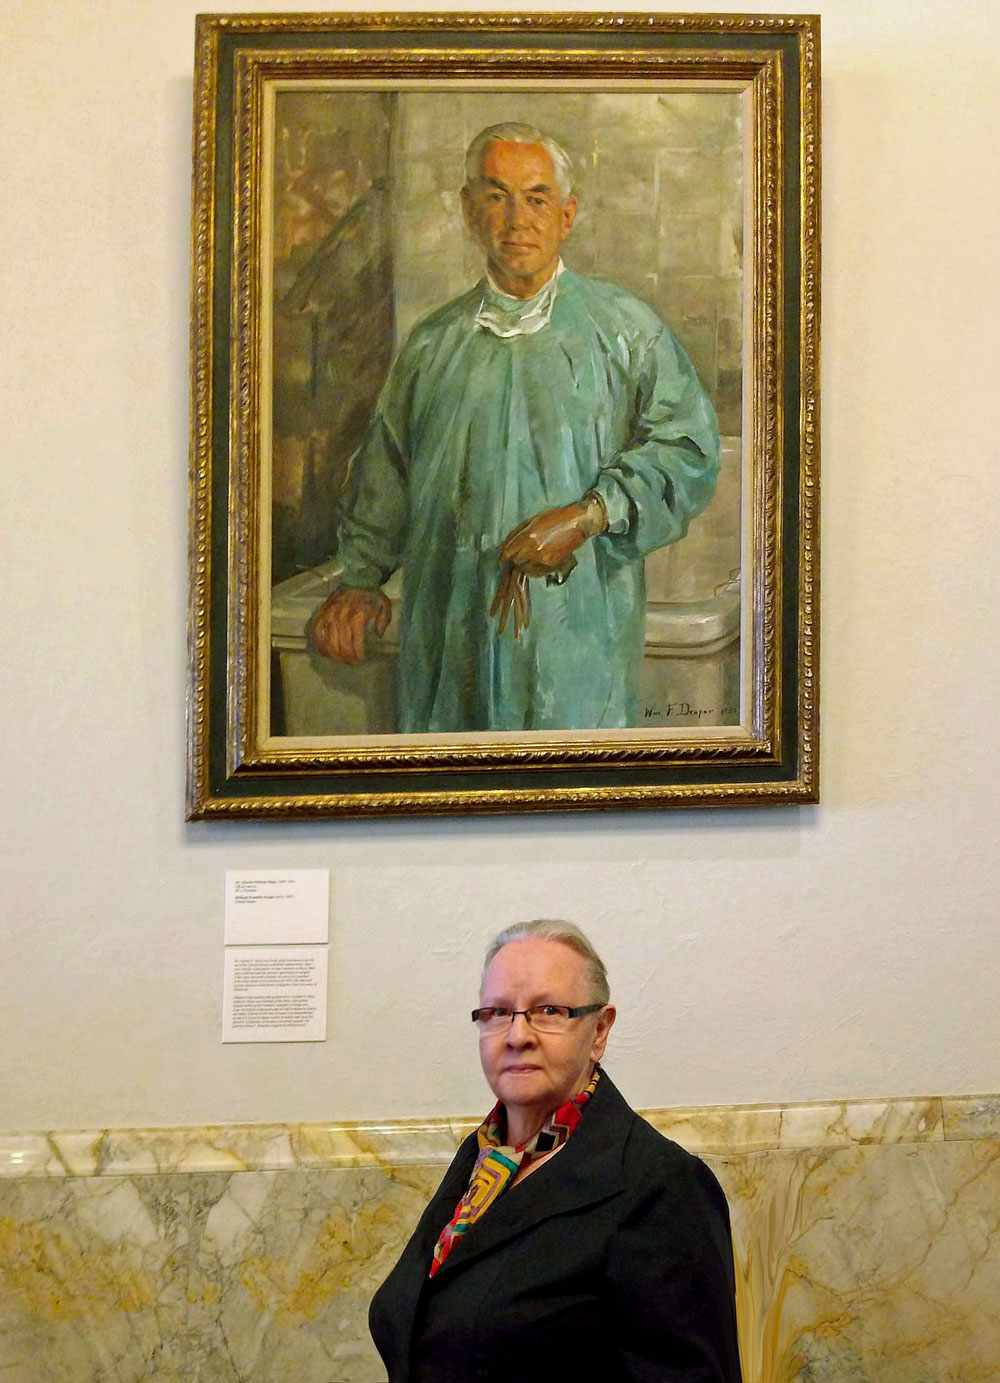 Elaine Stewart poses in front of a painting of Dr. Charles W. Mayo.